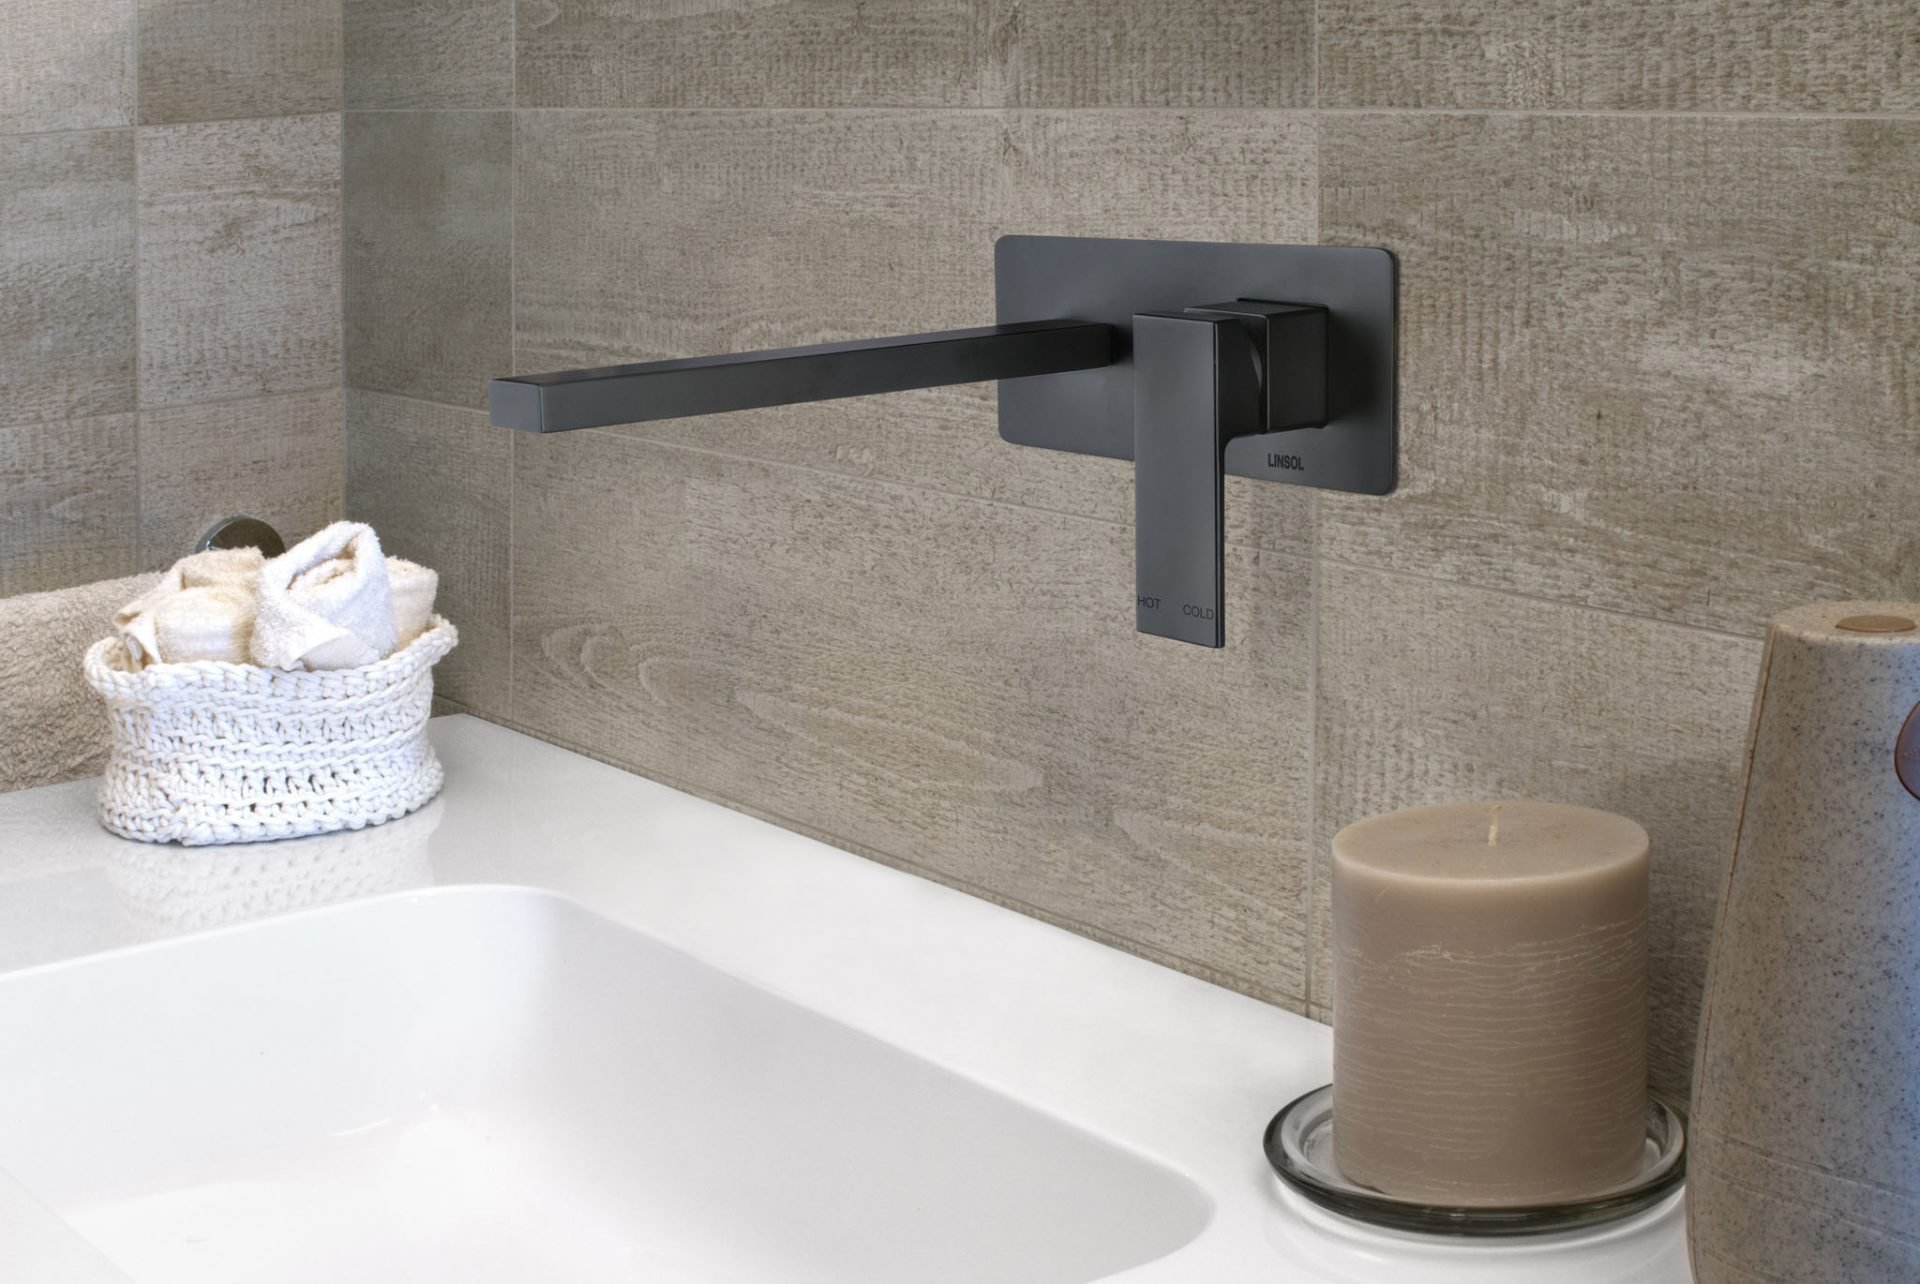 Joseph Matte Black Wall Basin Mixer